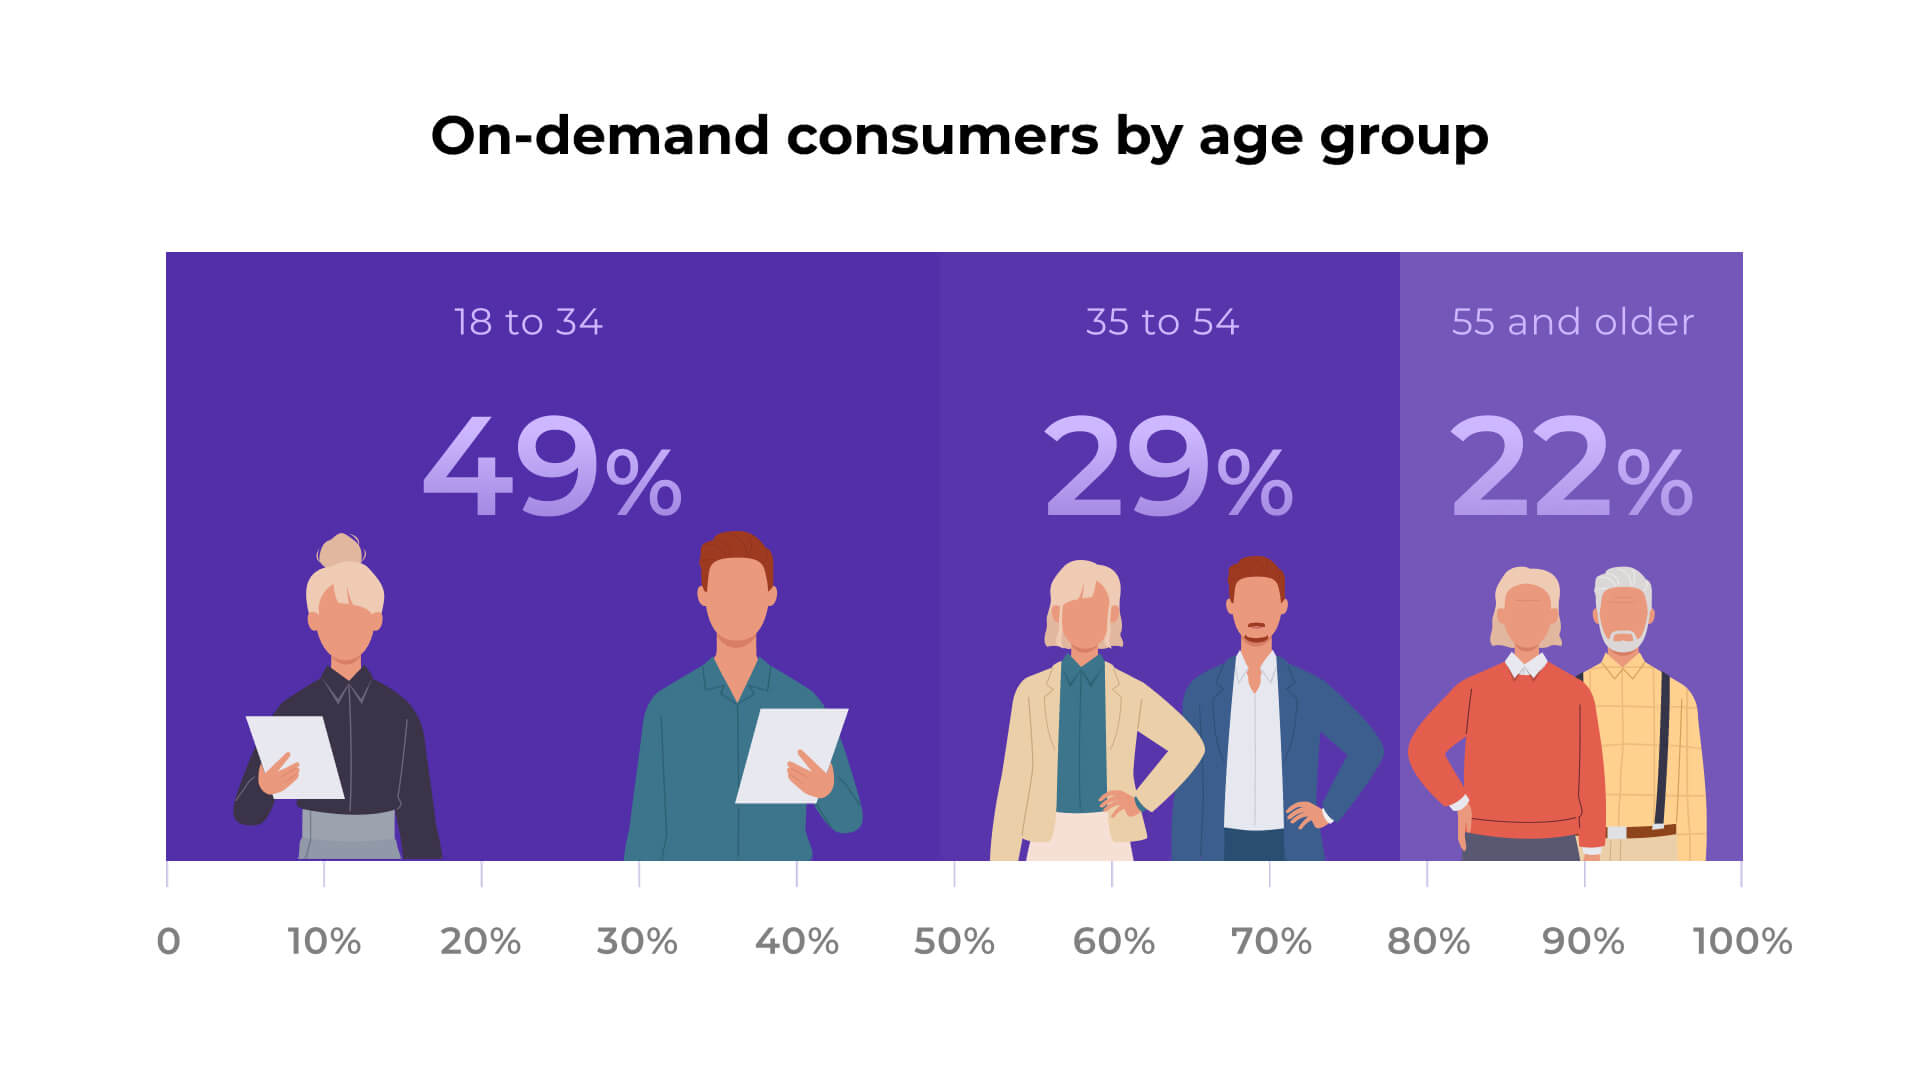 On-demand customers by age group